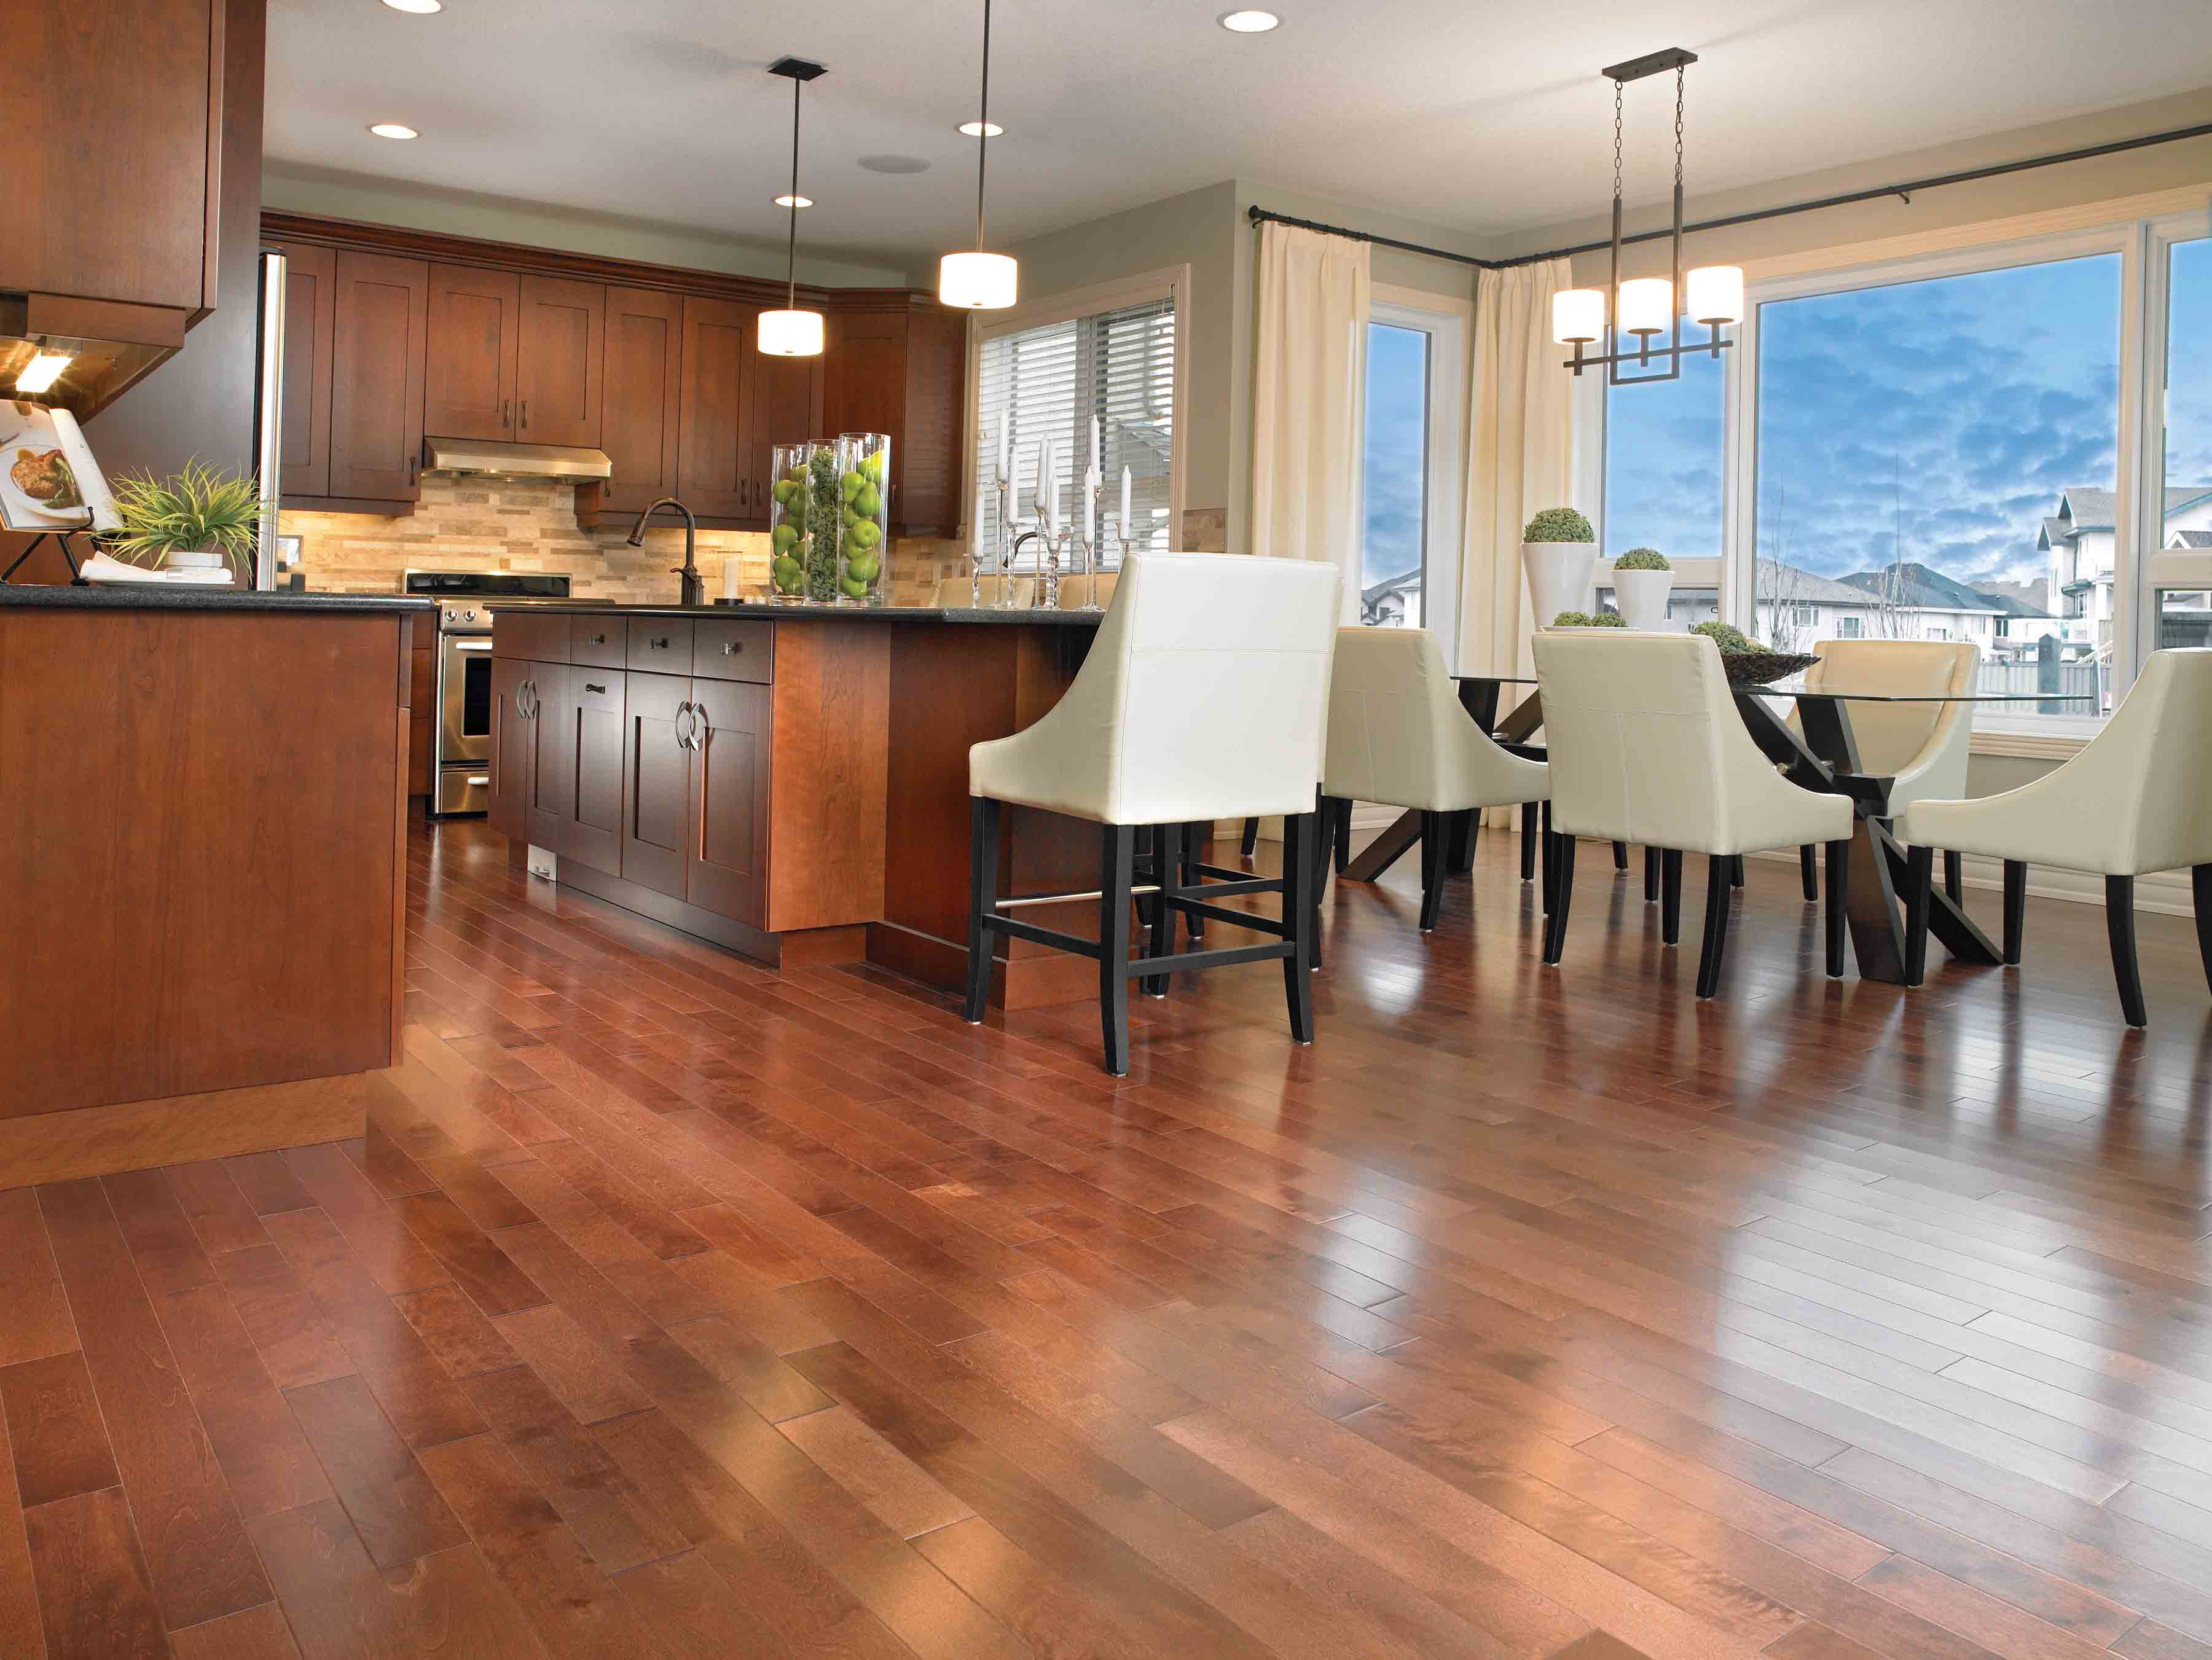 Hardwood floors in kitchen pictures Painted Wood Floors, Everything You Need To Know